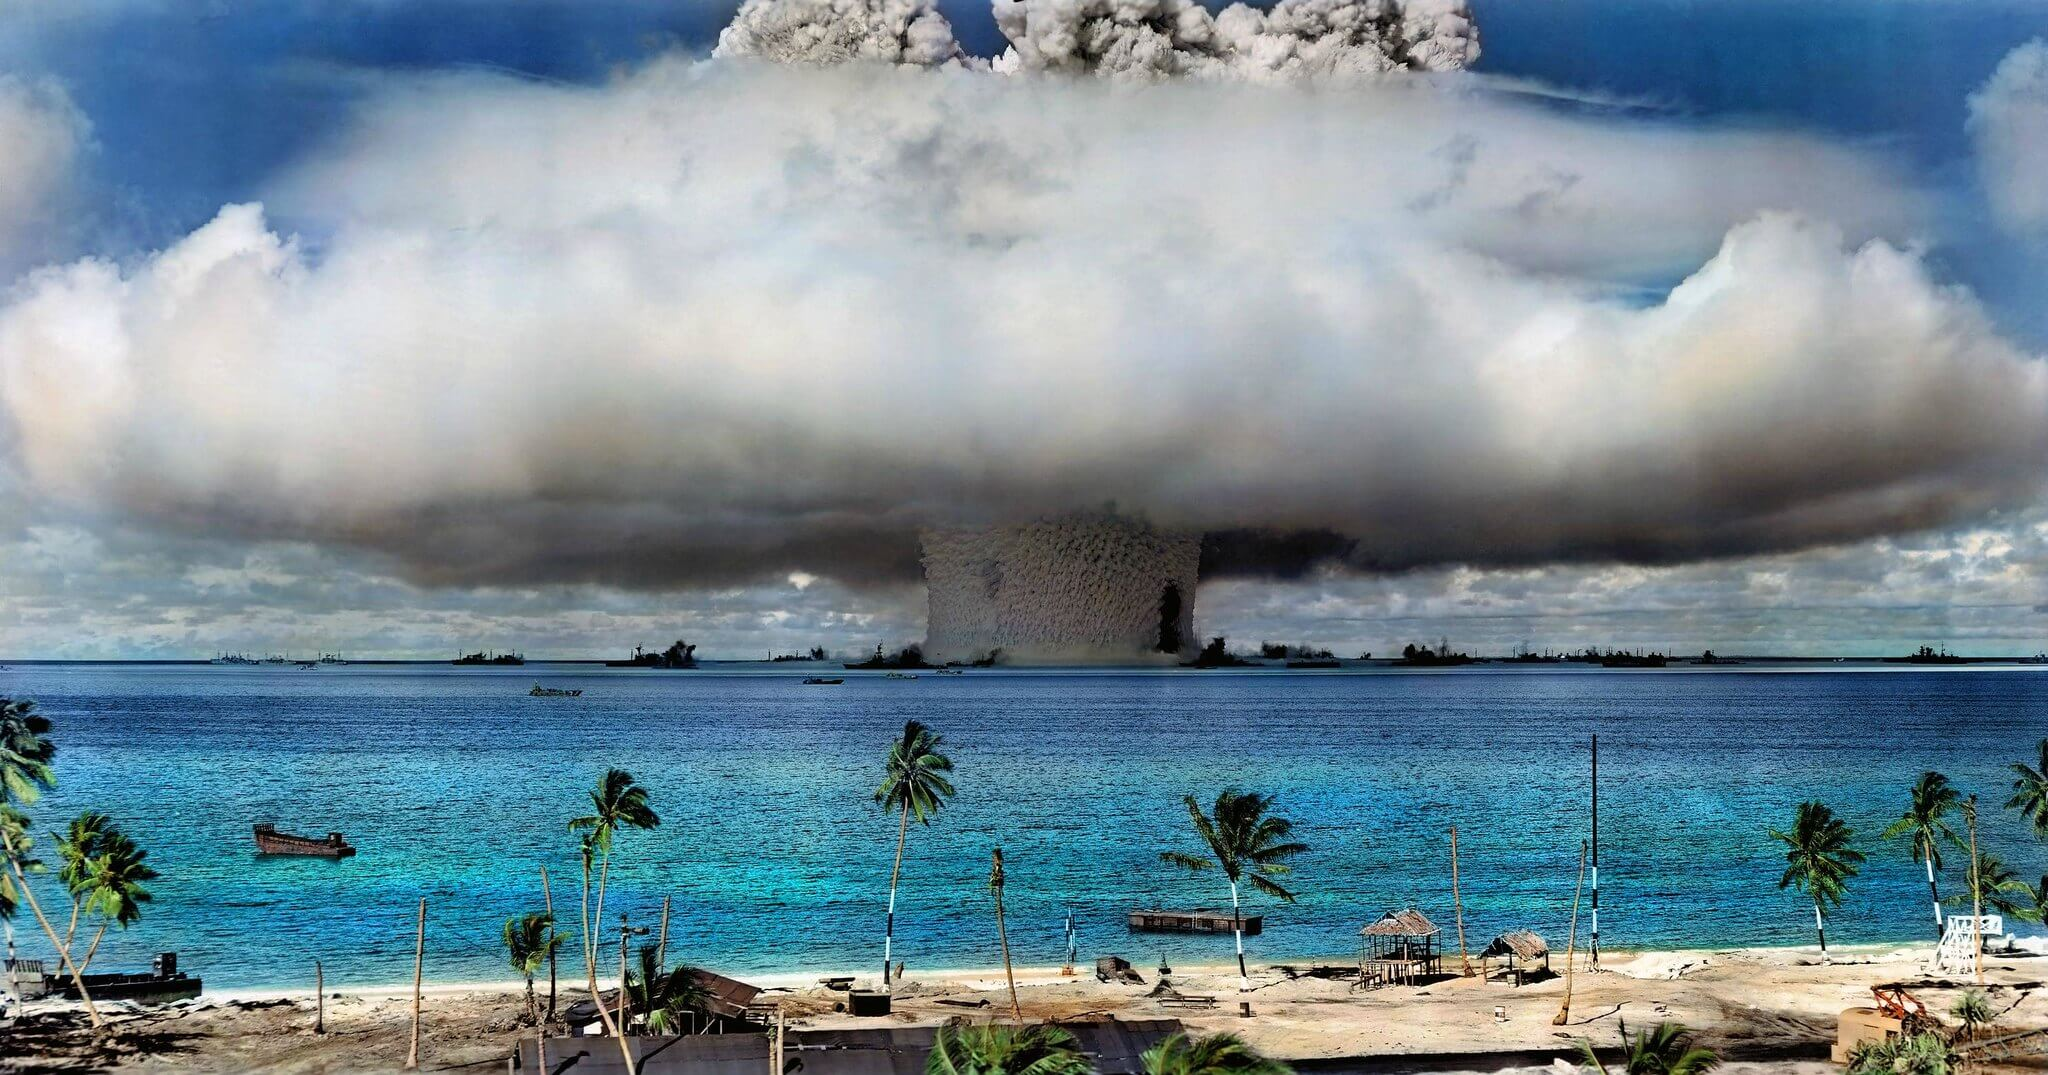 A nuclear weapon is detonated at Bikini Atoll in the Marshall Islands in 1946. (Image has been colorized.) © International Campaign to Abolish Nuclear Weapons